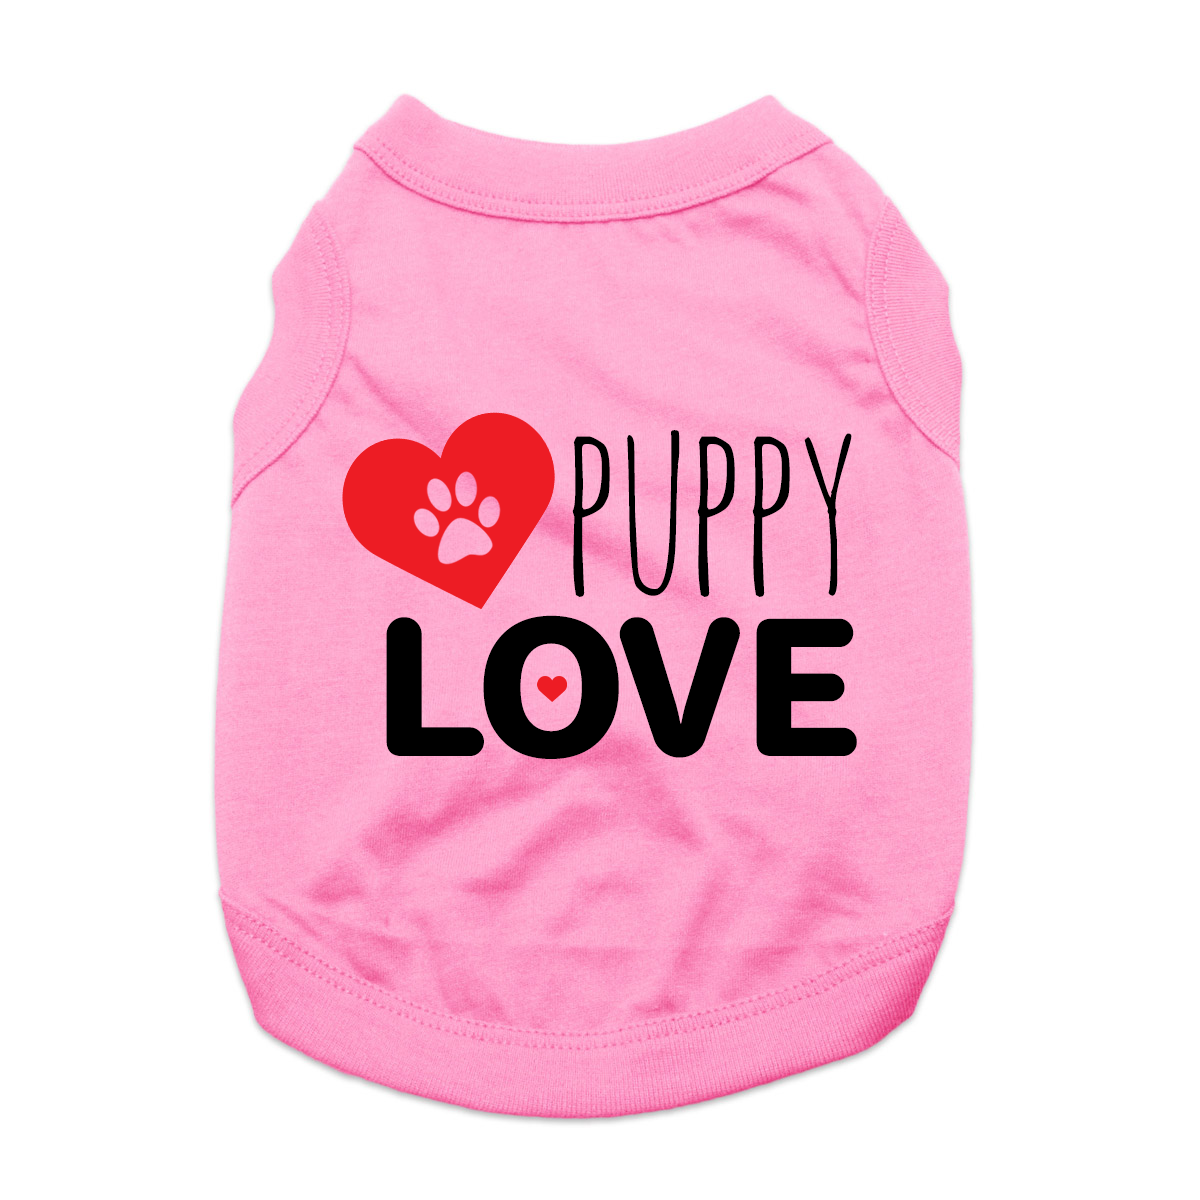 Puppy Love Dog Shirt with Paw Heart - Light Pink